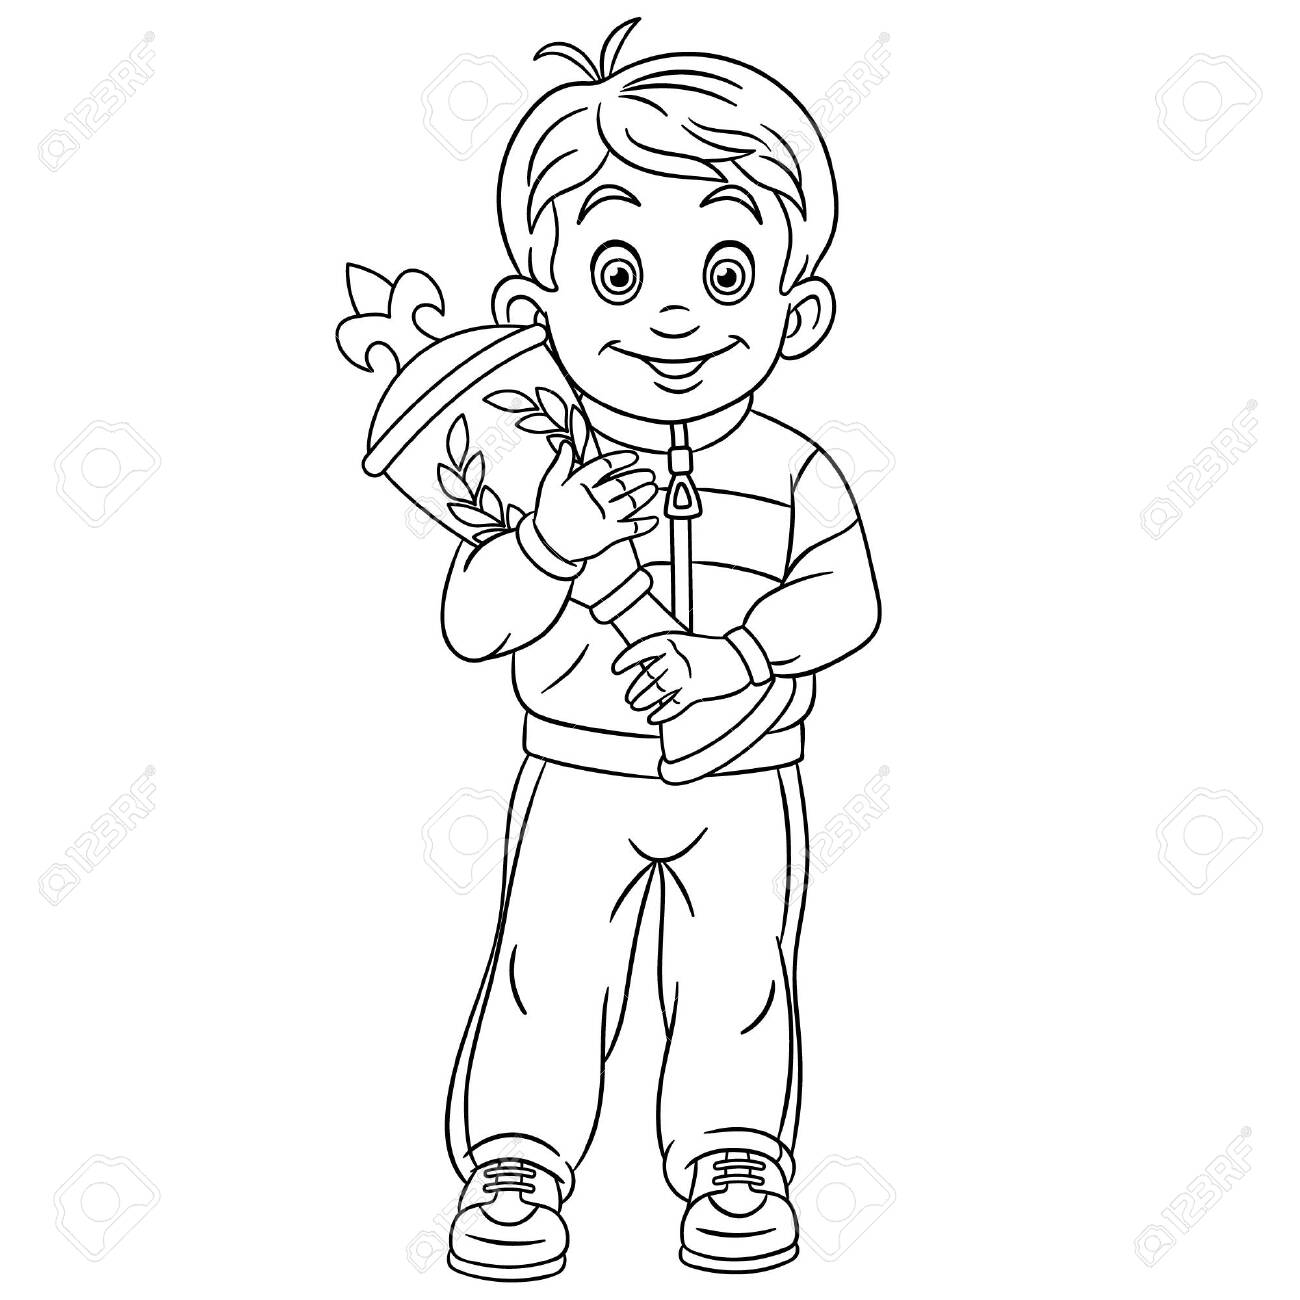 Colouring page cute cartoon winner in sport competitions boy